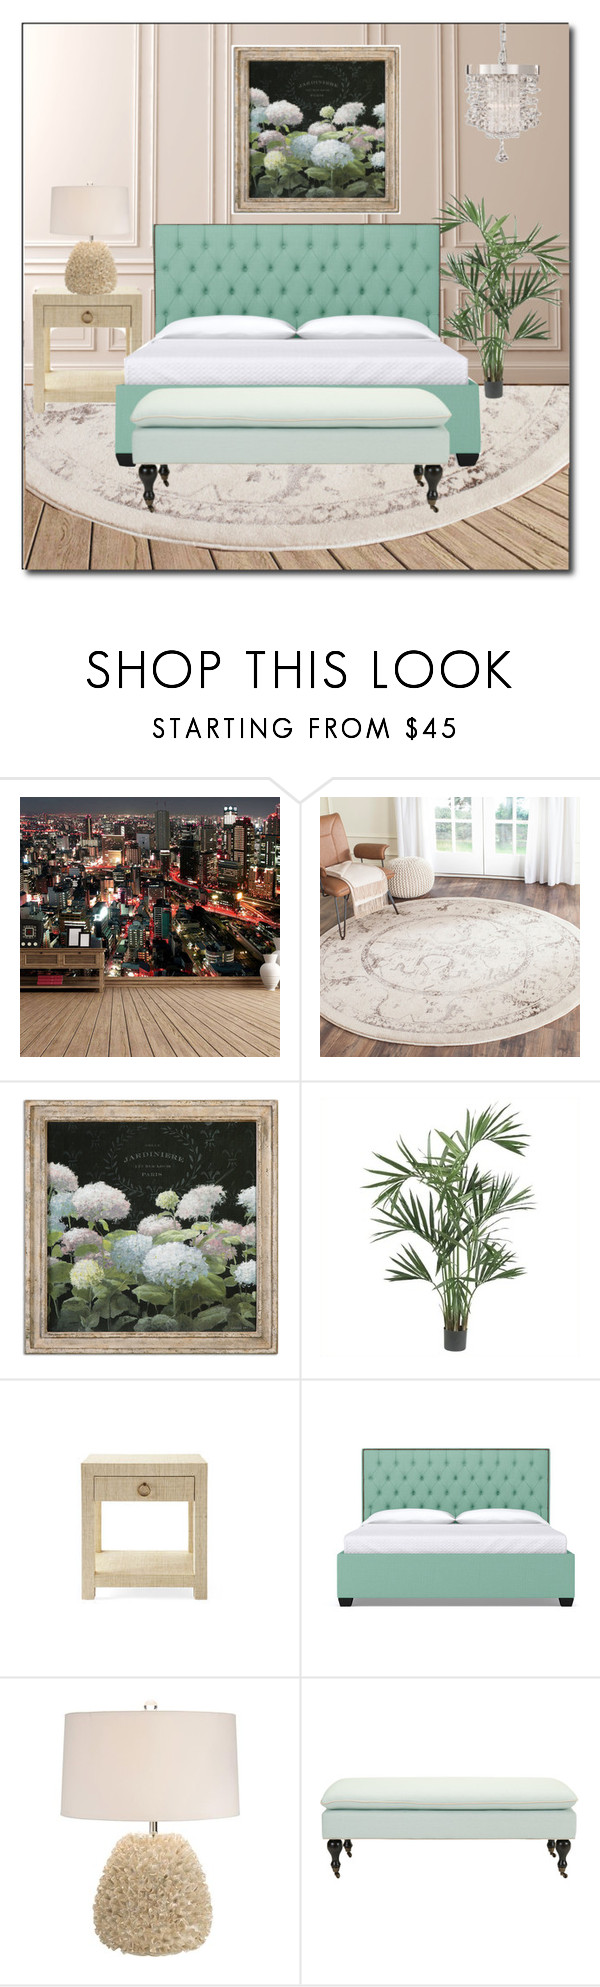 """Elegance"" by littlefeather1 ❤ liked on Polyvore featuring interior, interiors, interior design, home, home decor, interior decorating, Safavieh, Nearly Natural, Serena & Lily and Uttermost"